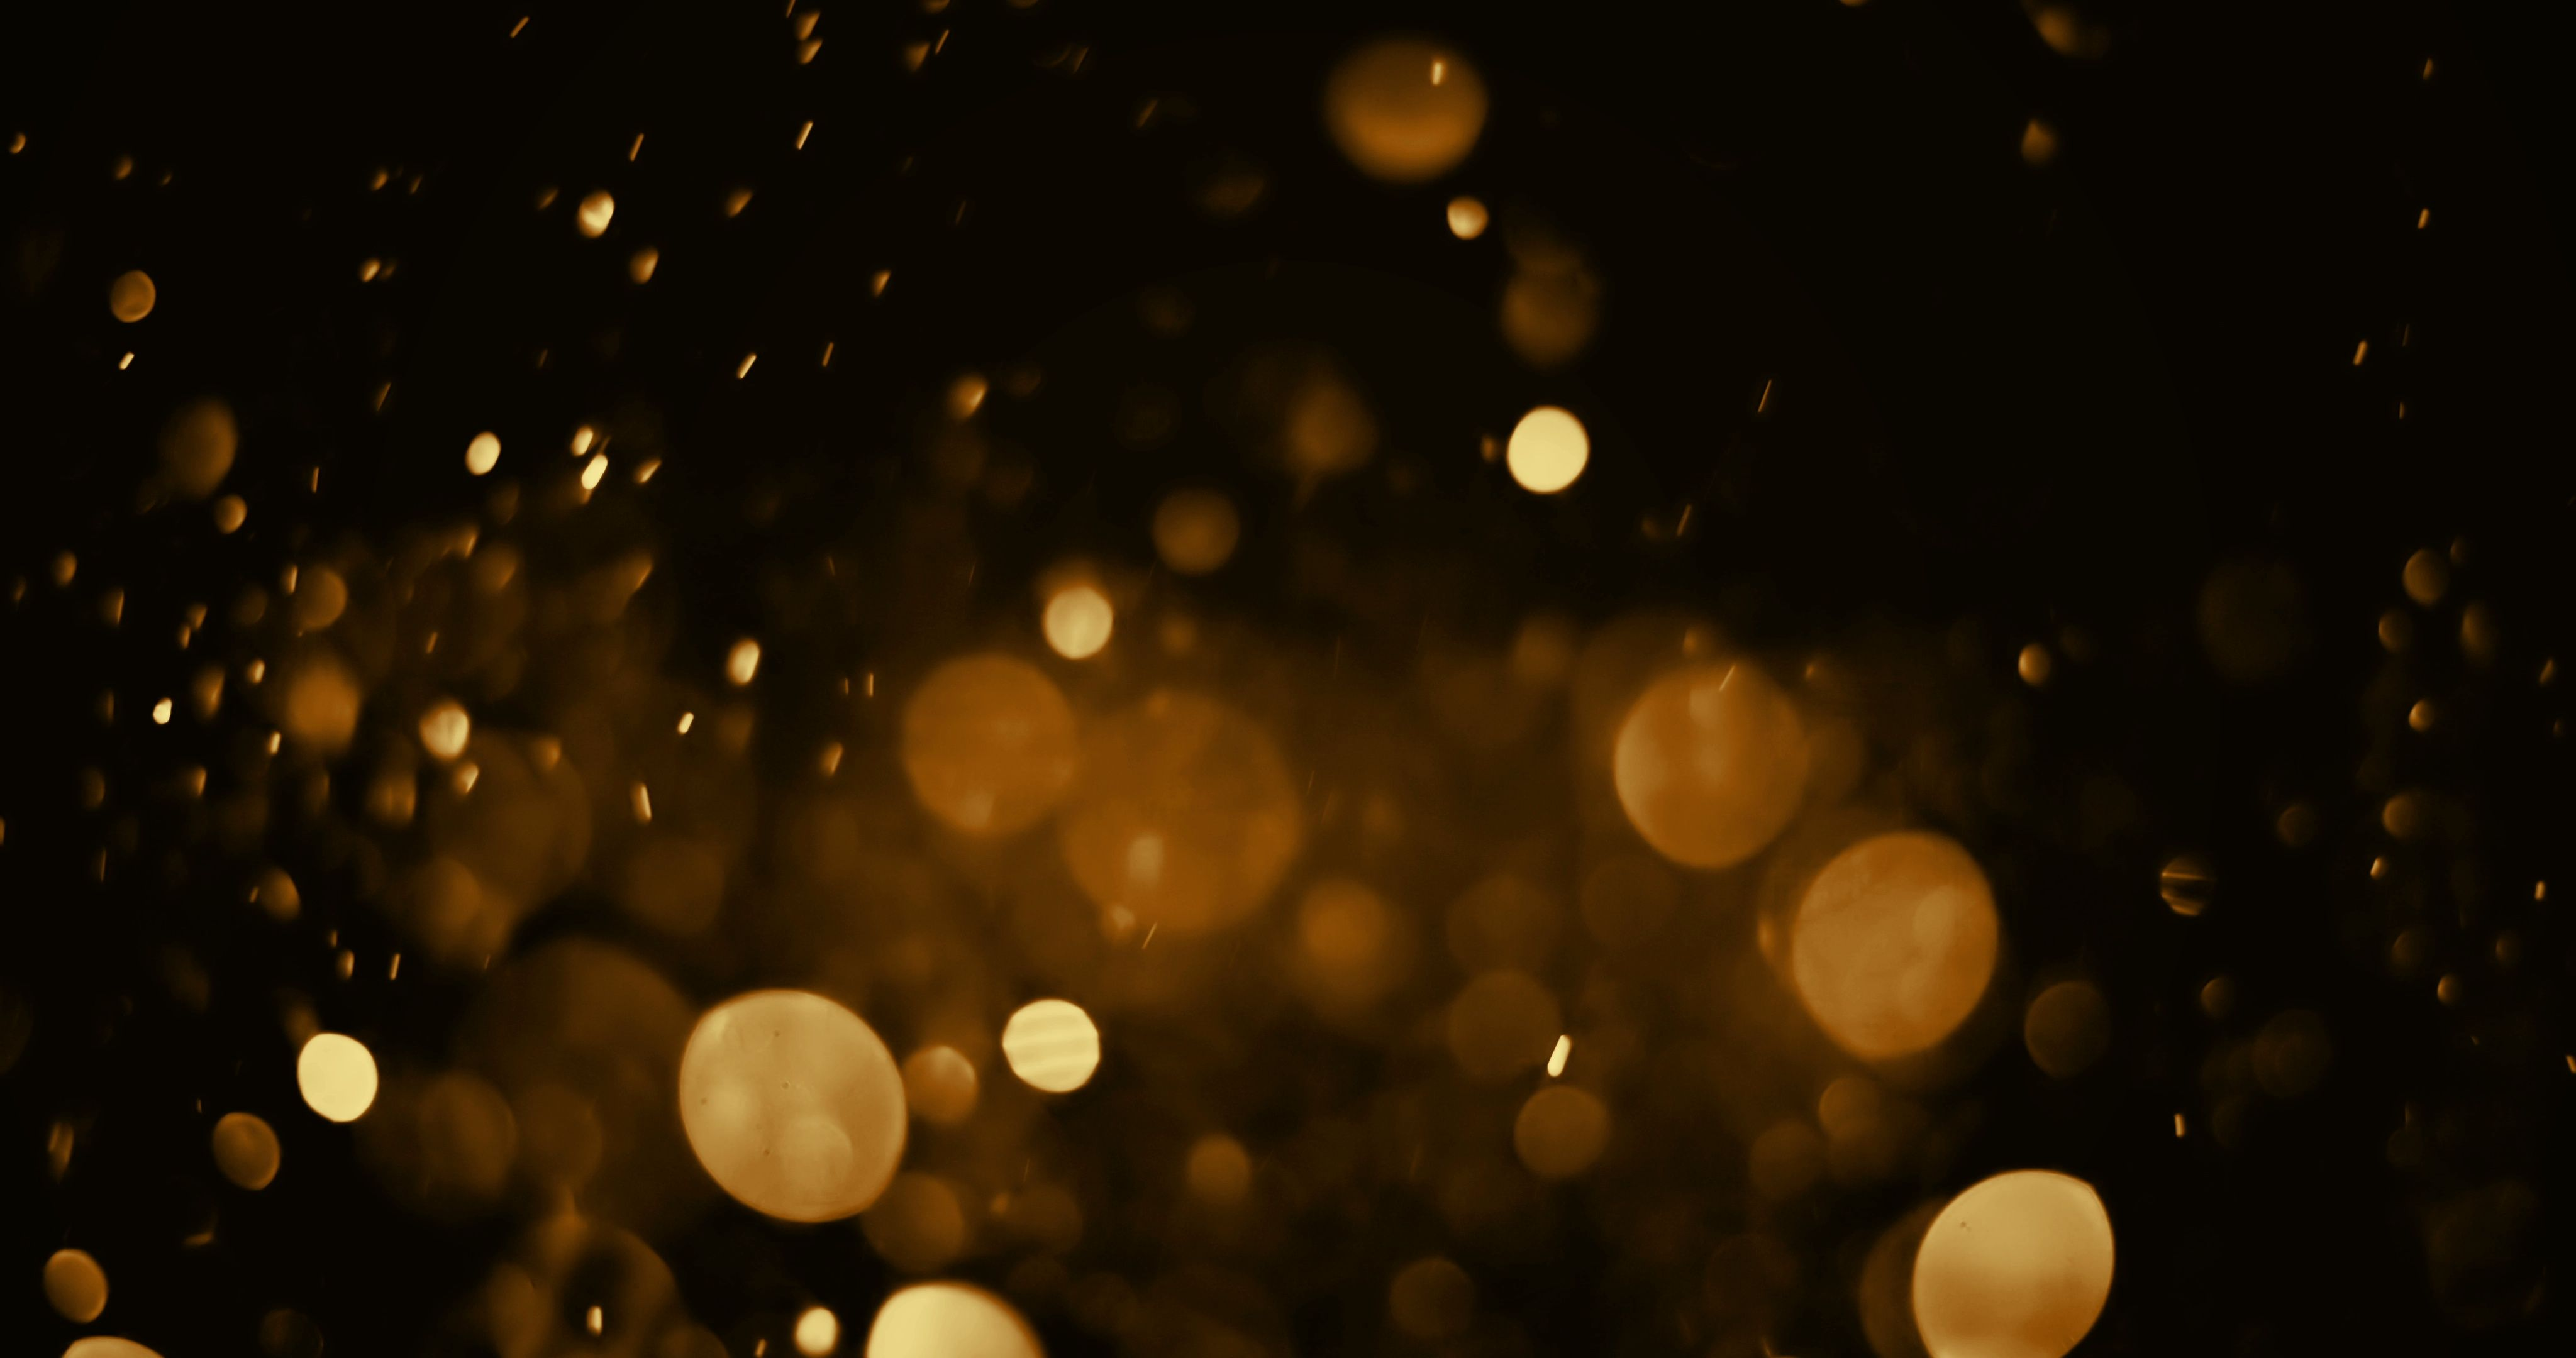 Christmas Gold Sparkle Glitter Explosion Dust Particles Background With Bokeh Stock Footage Glitter Explosion Sparkle C Gold Sparkle Stock Footage Gold Powder